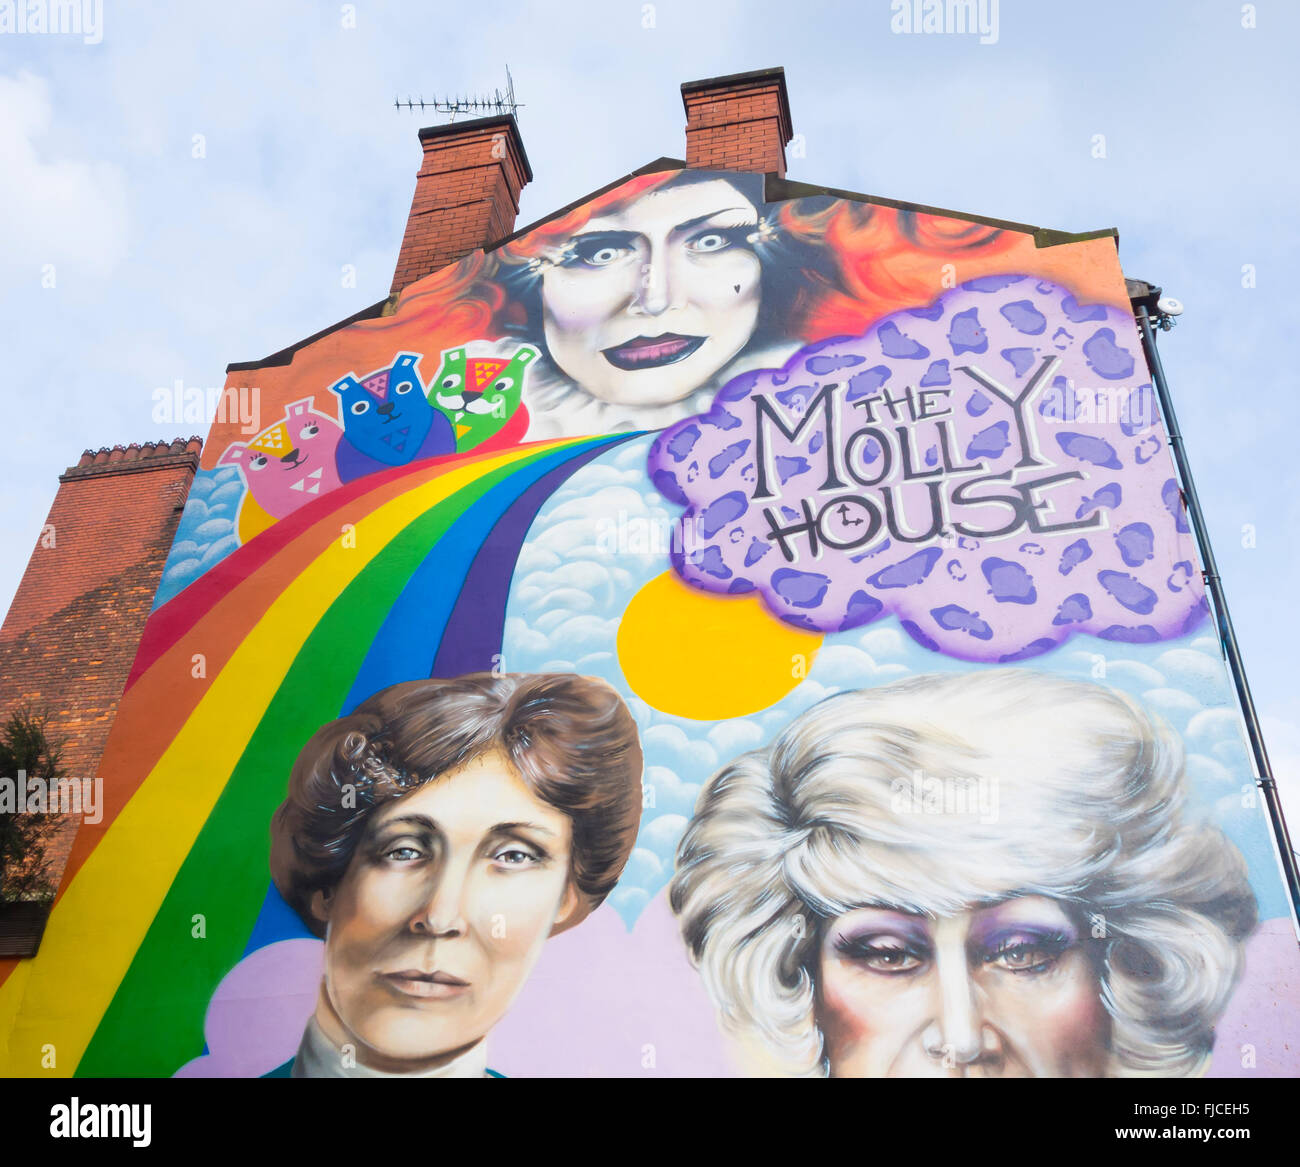 Wall mural on The Molly House tea room and bar on Richmond street in Manchester`s Gay village. Manchester, England, - Stock Image